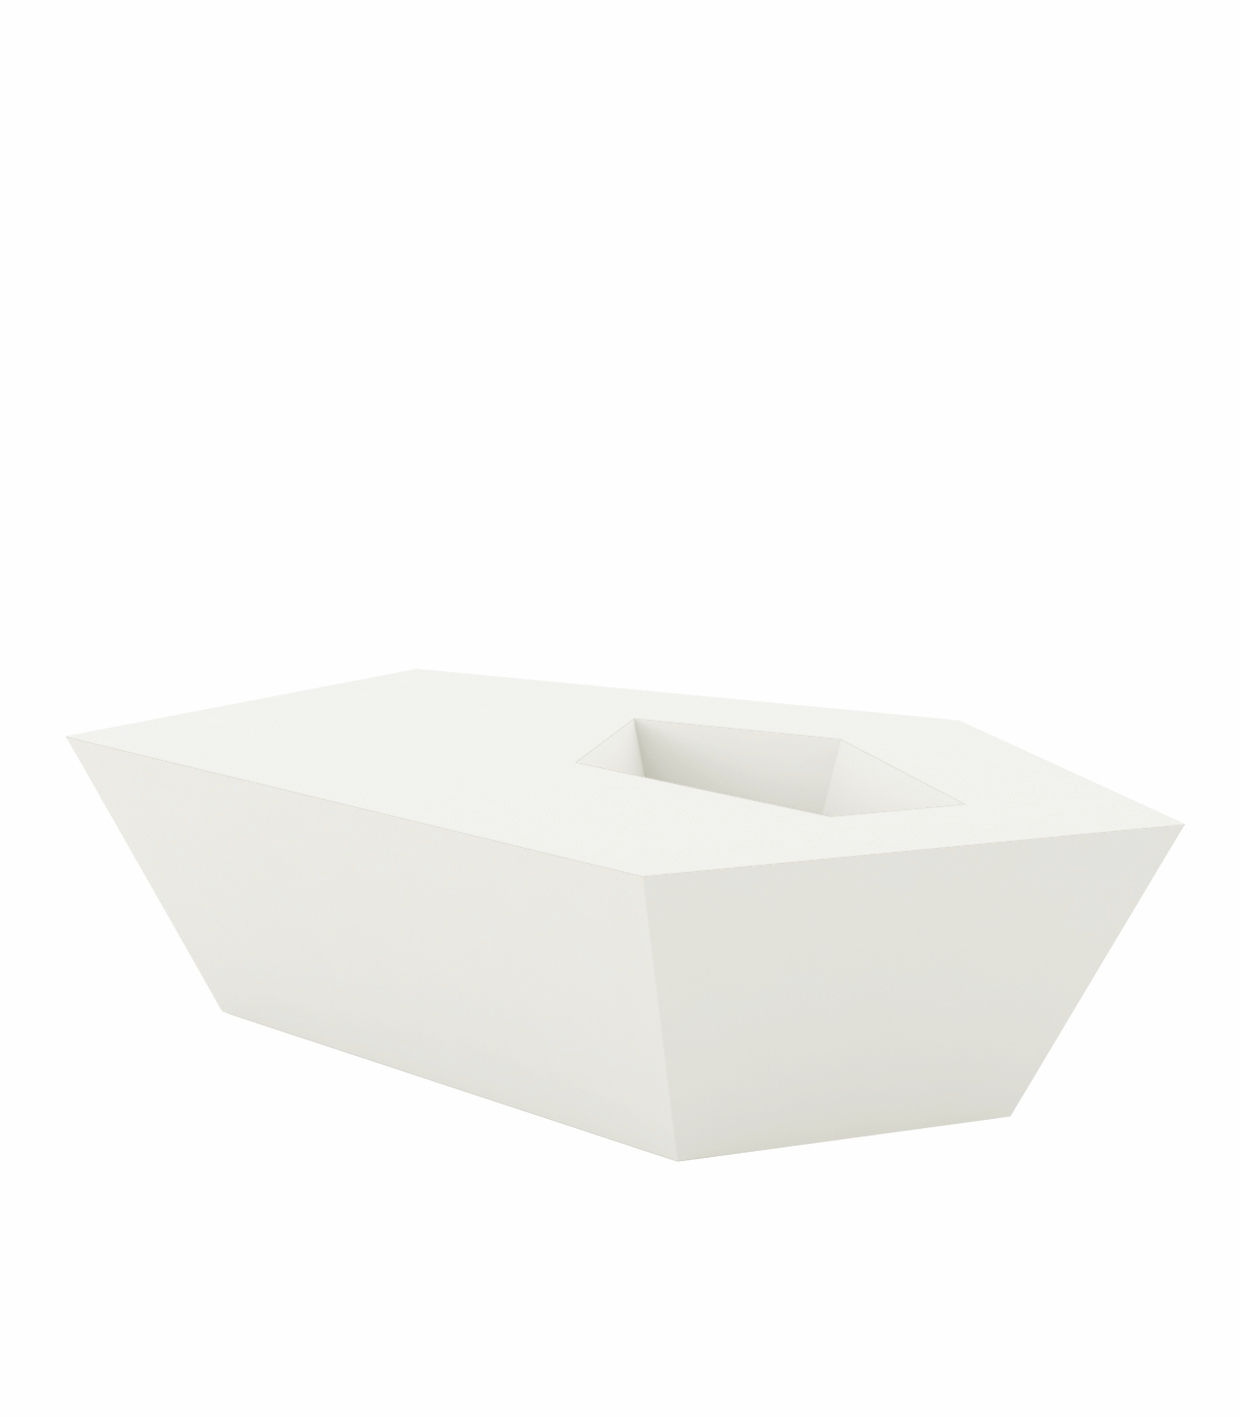 faz coffee table luz outdoor table with white led light glass bucket